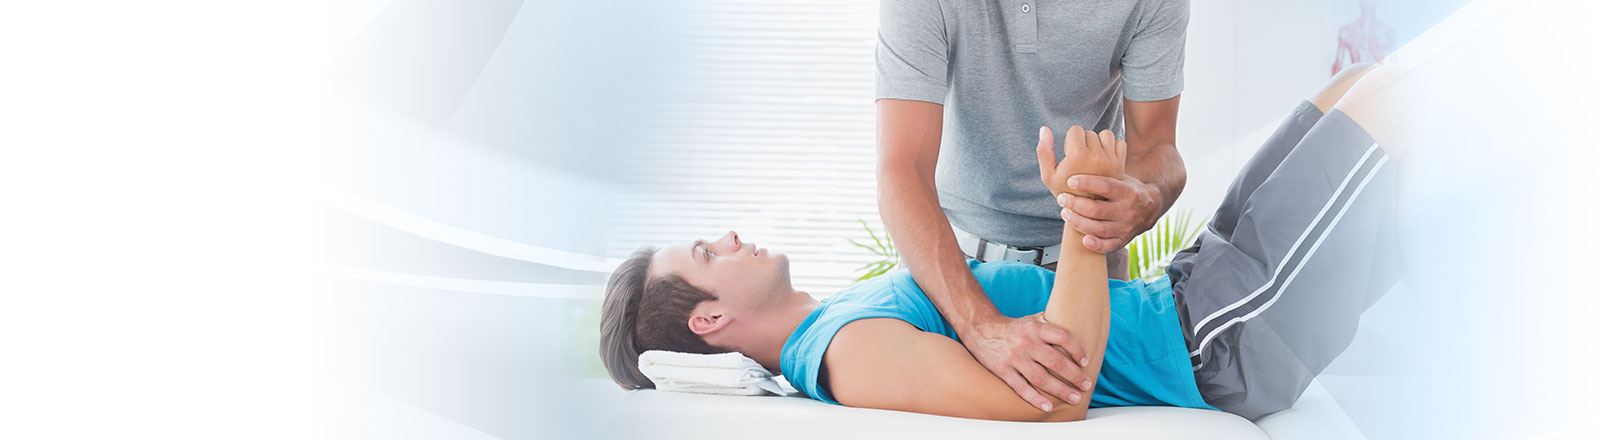 Chiropractic Elbow Treatment at Absolute Health Clinic - Chiropractor in Arlington Heights